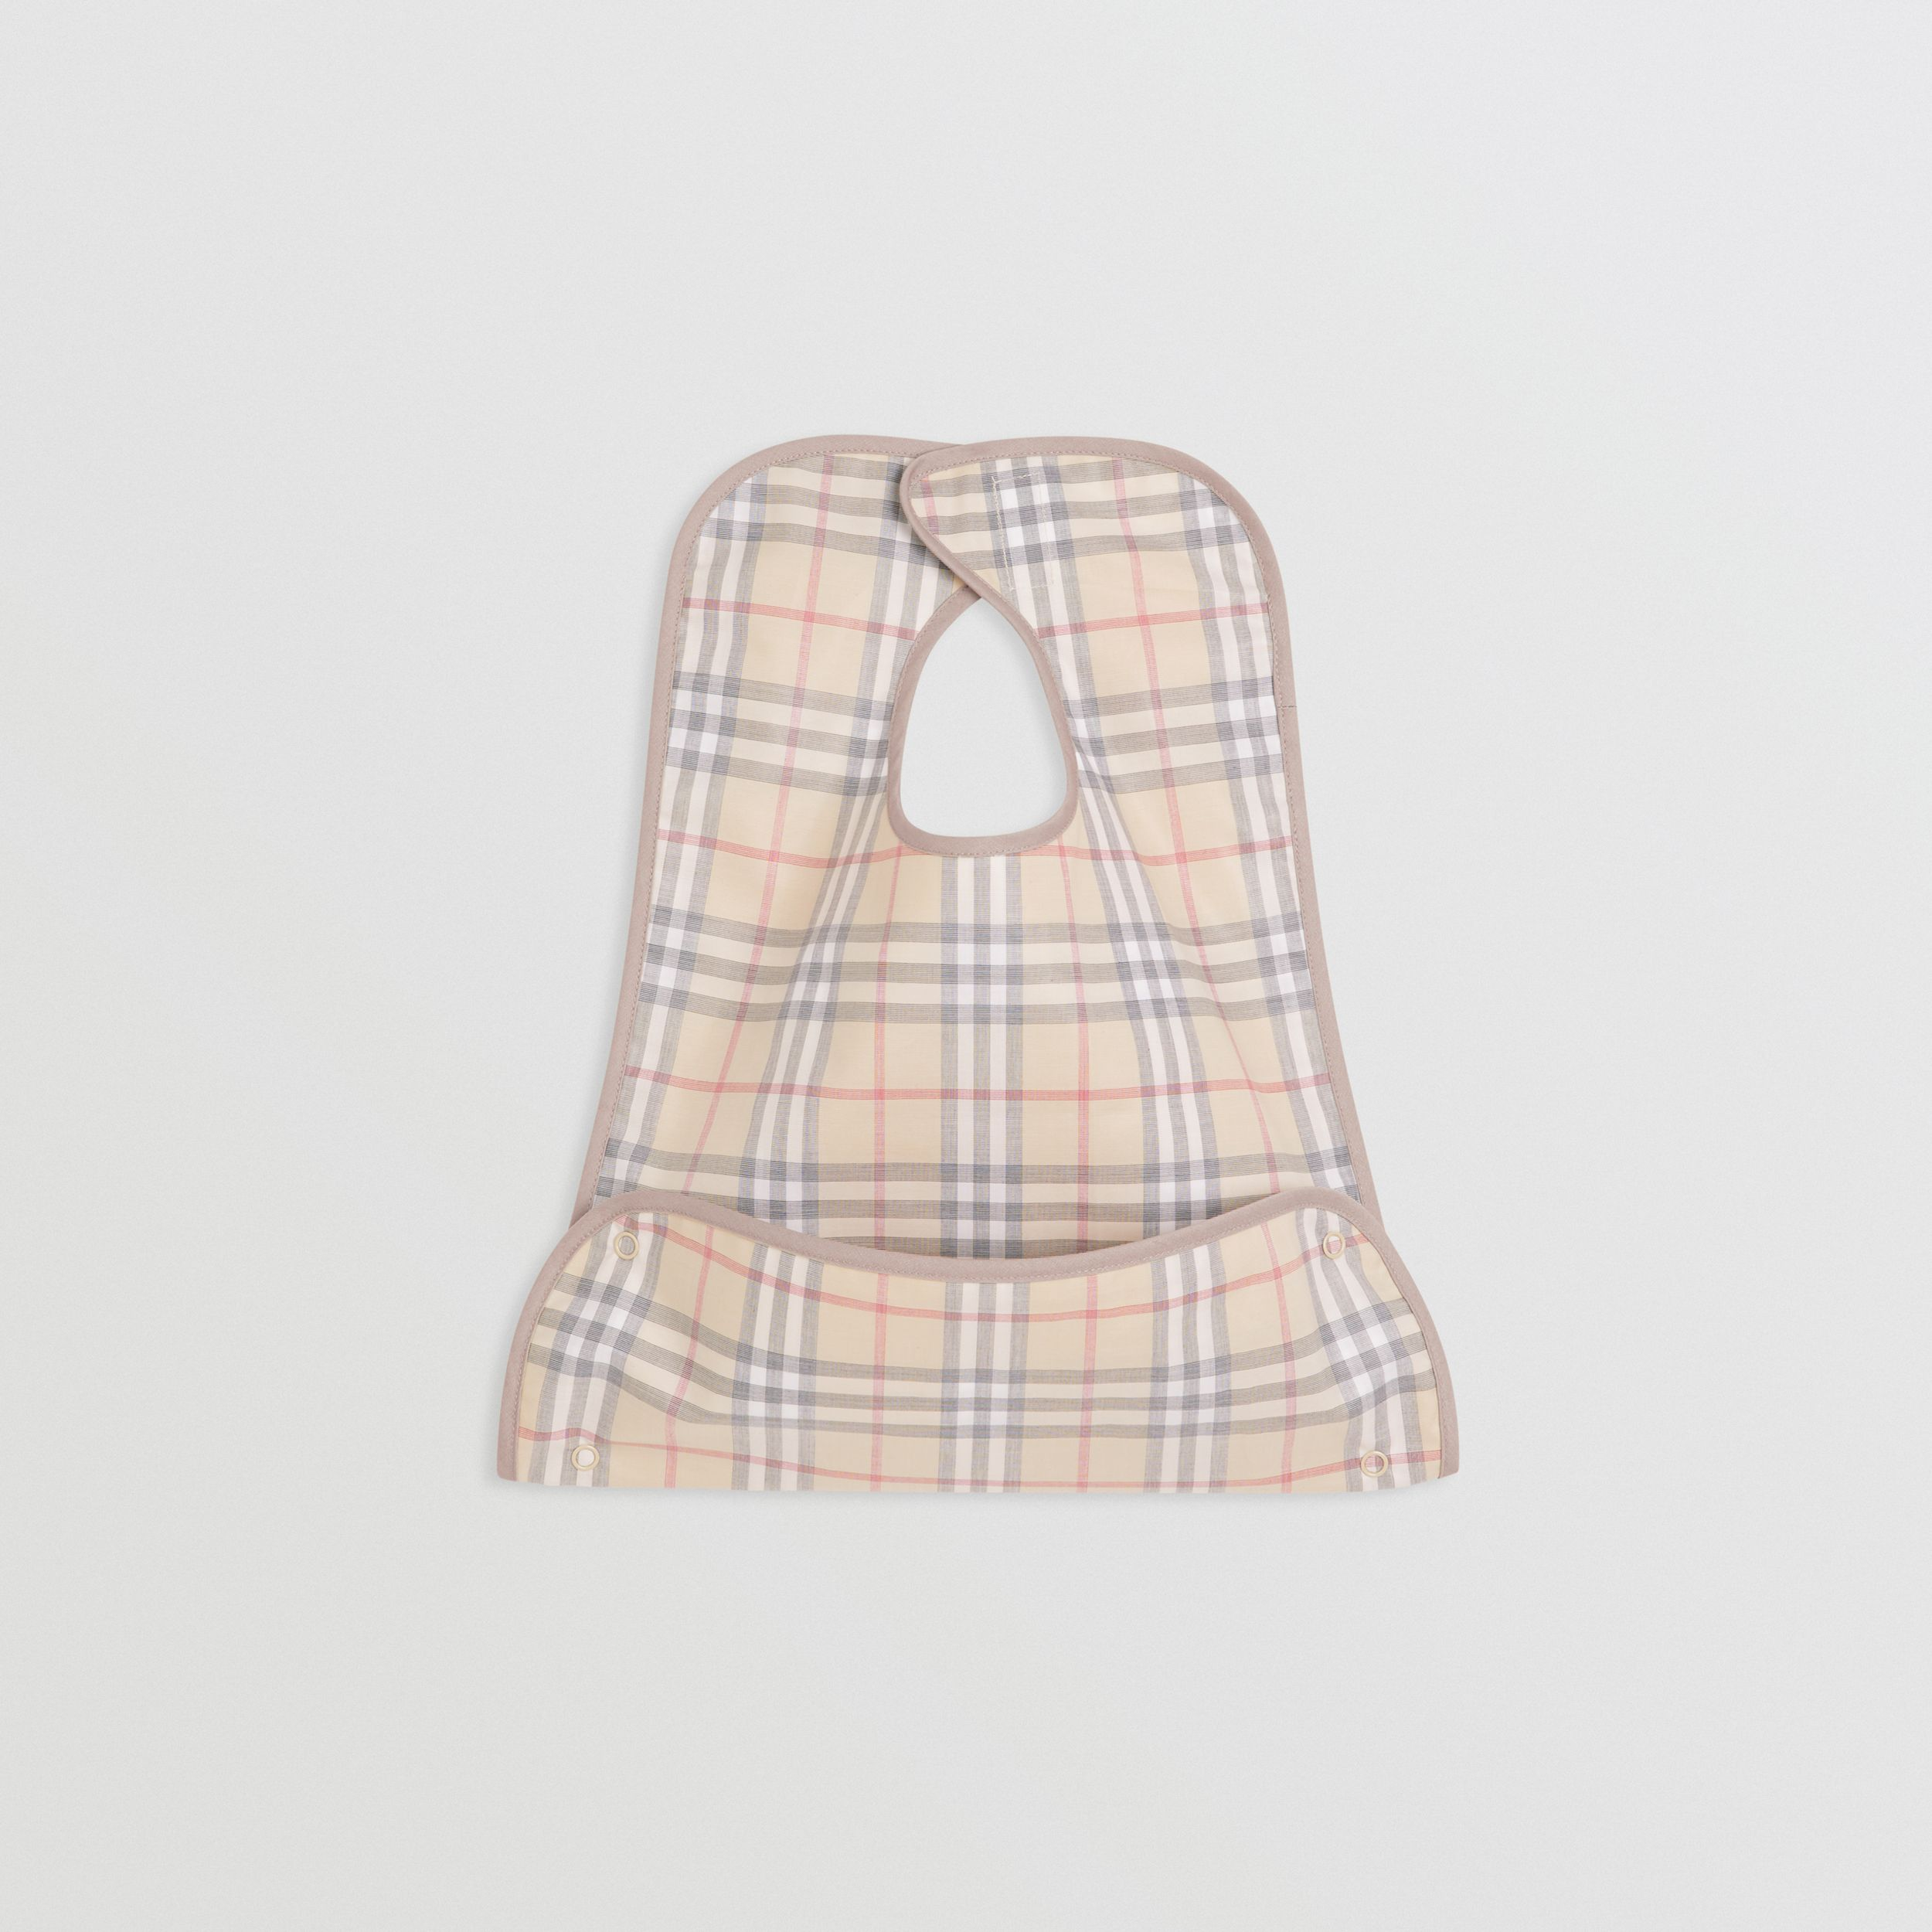 Coated Check Cotton Baby Bib in Pale Stone - Children | Burberry - 1